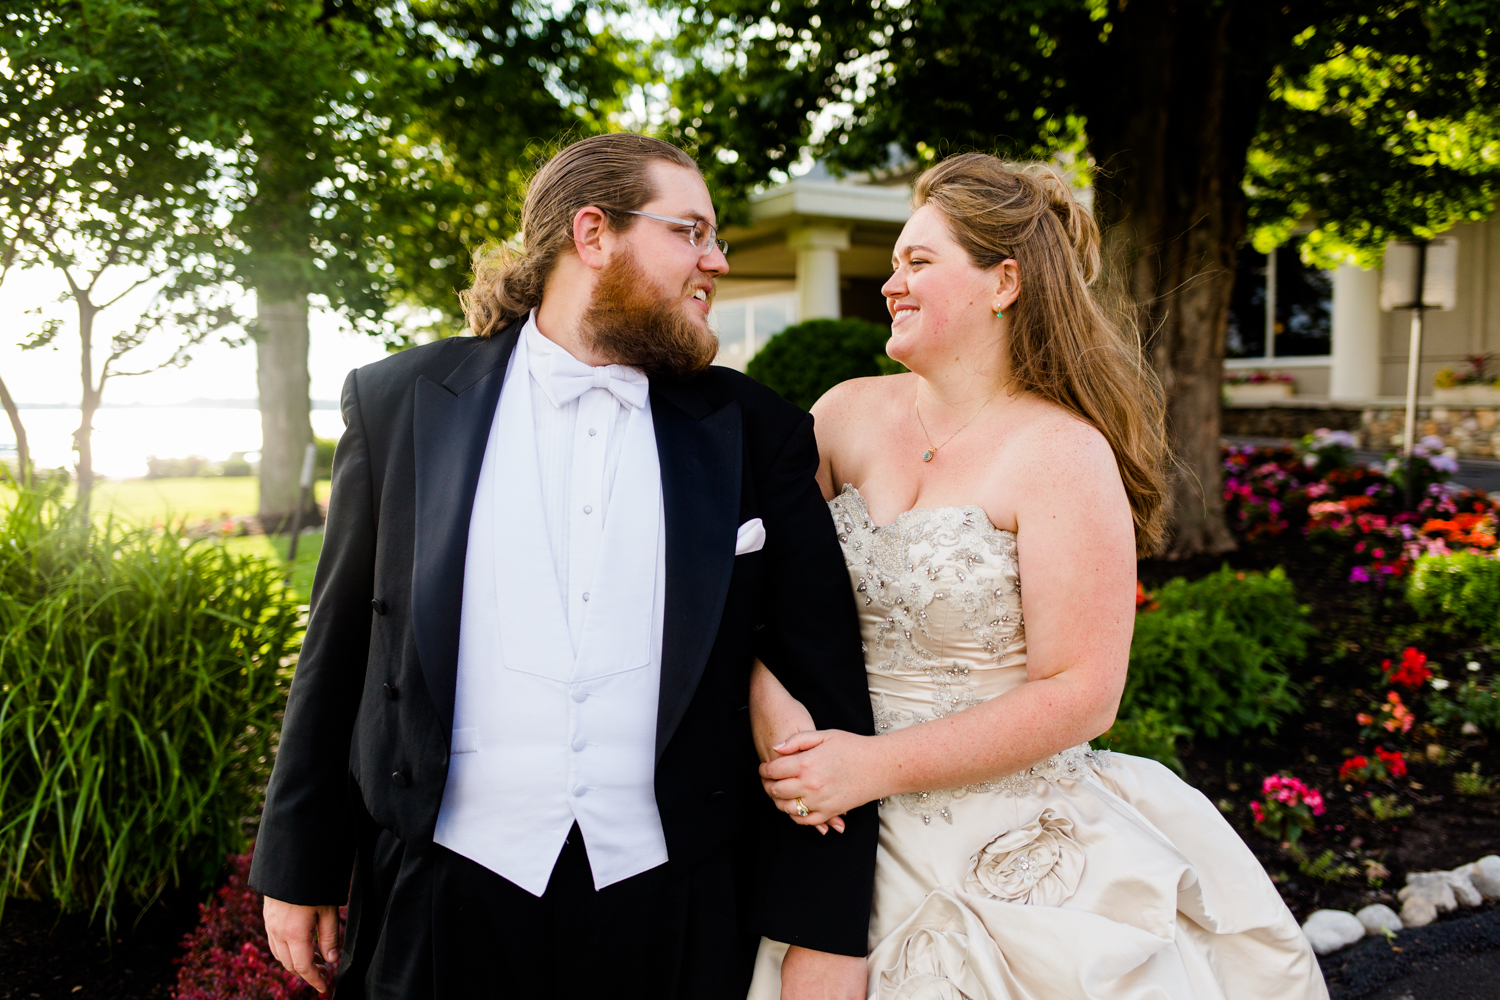 Portrait of bride and groom looking at each other. There are flowers in the background.